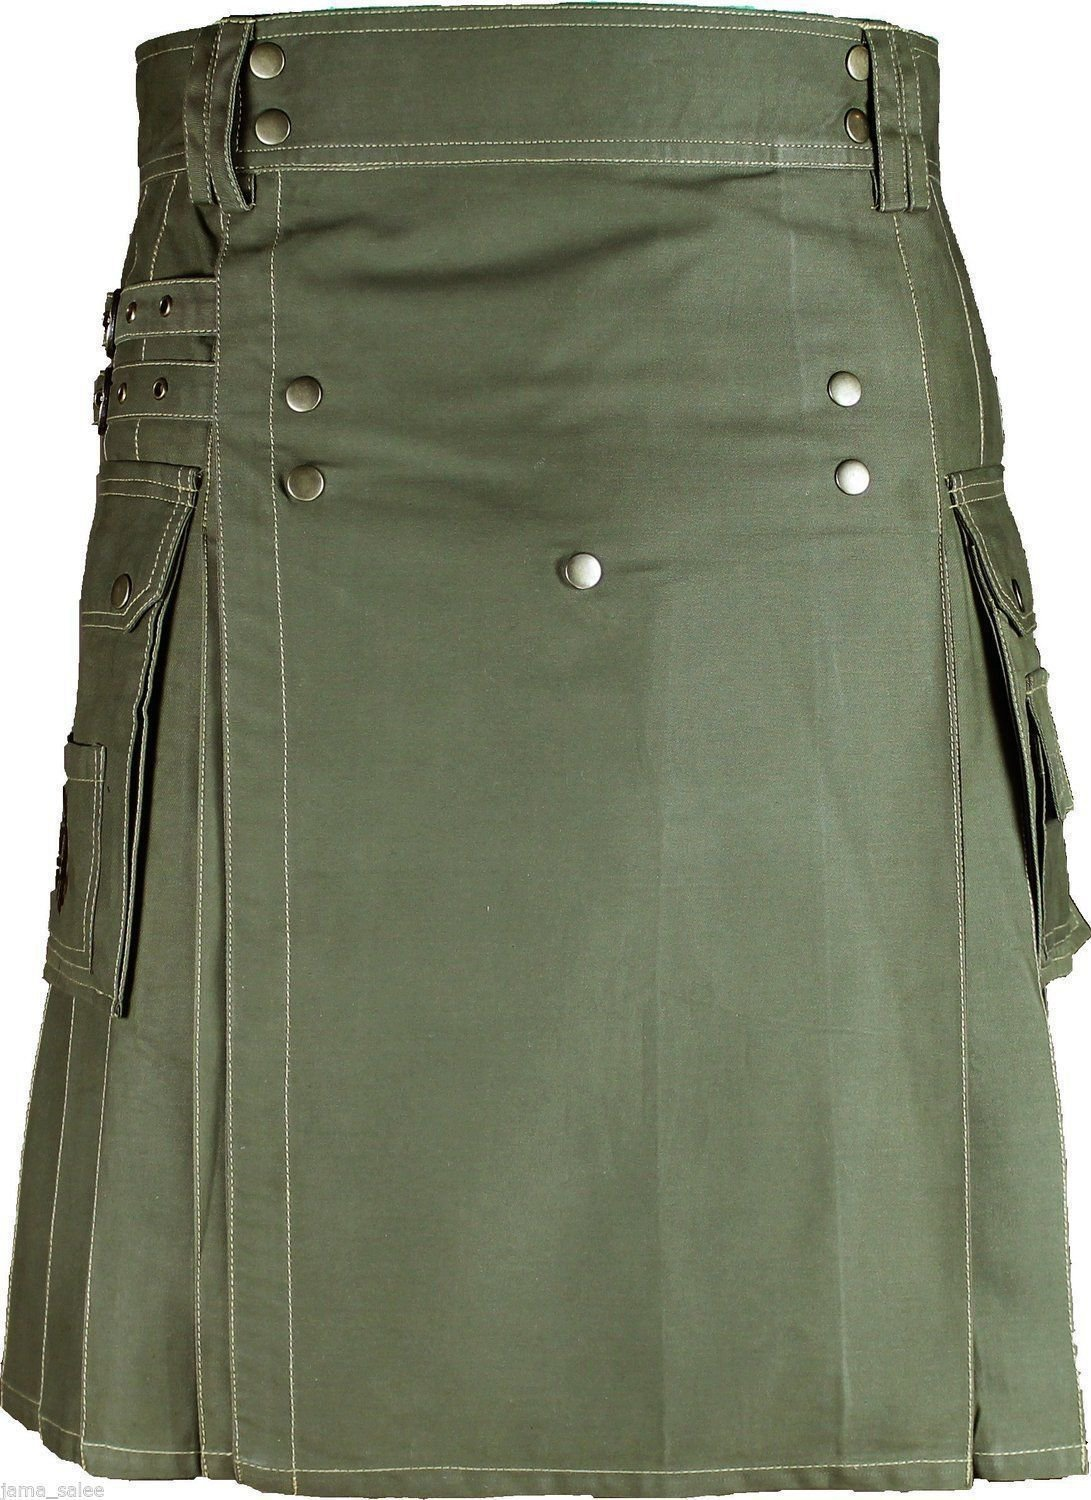 Unisex Modern Utility Kilt Olive Green Cotton Kilt Brass Material Scottish Kilt Fit to 48 Waist